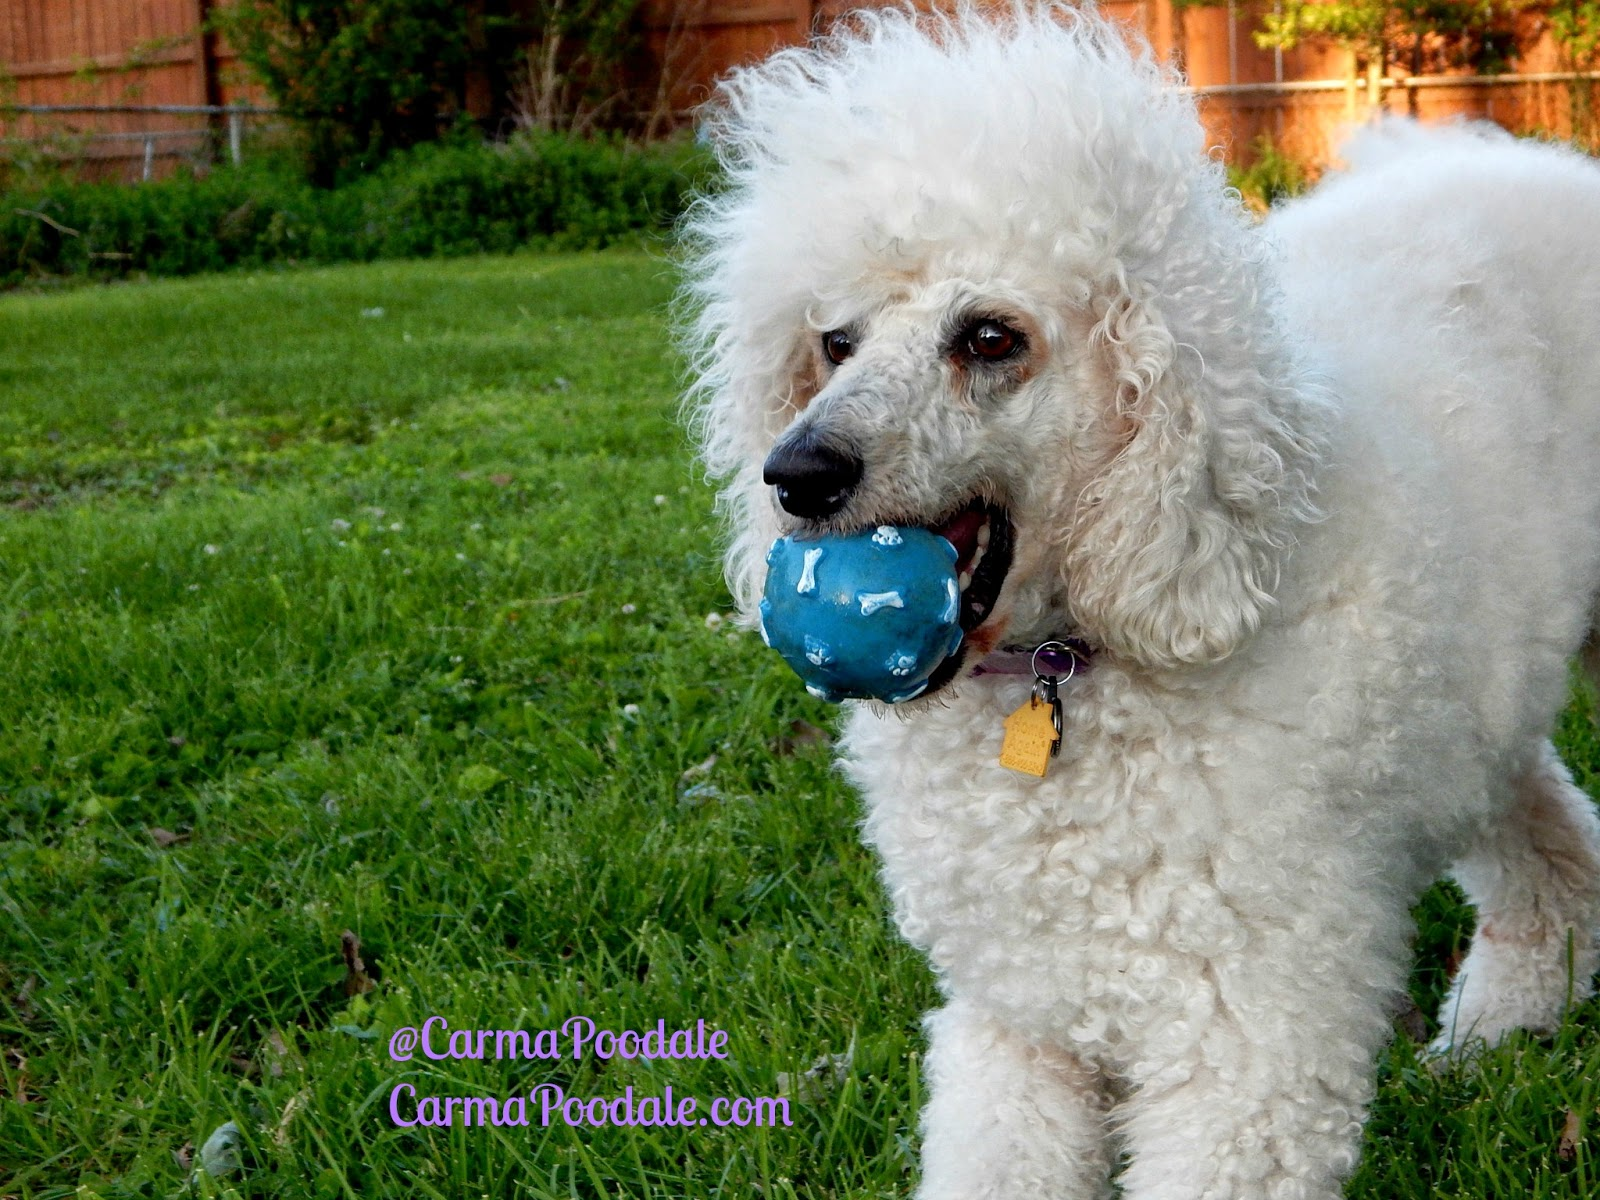 carma with ball in mouth